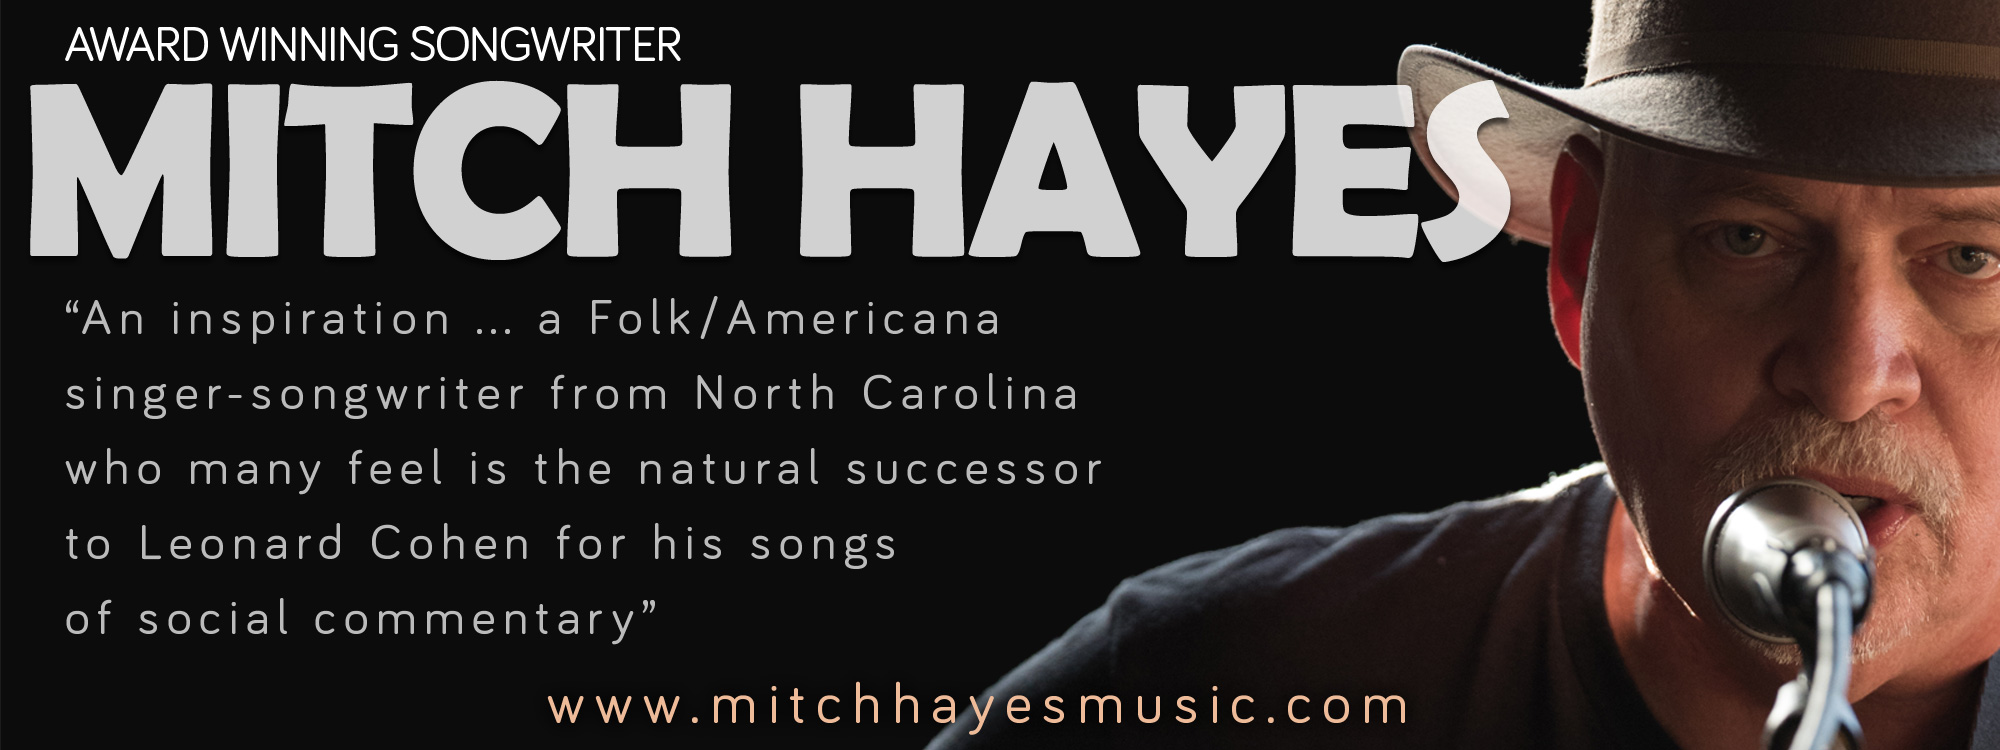 Mitch Hayes Music